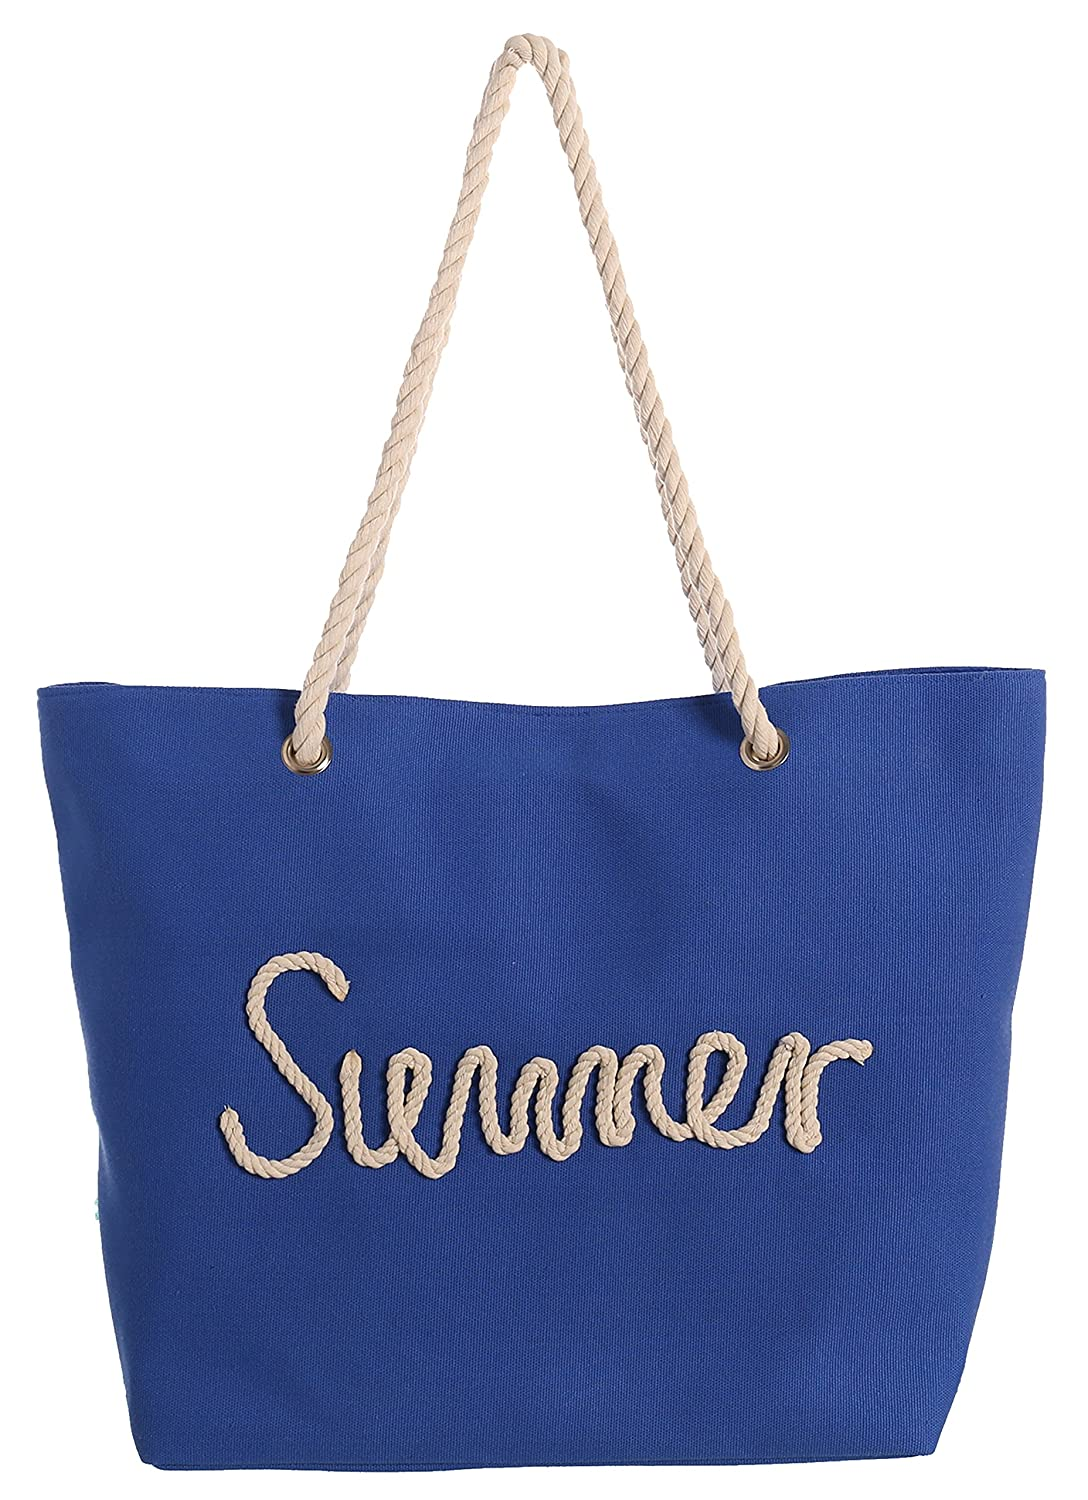 Juinsa Summer Bolsa de Tela y de Playa, 51 cm: Amazon.es ...